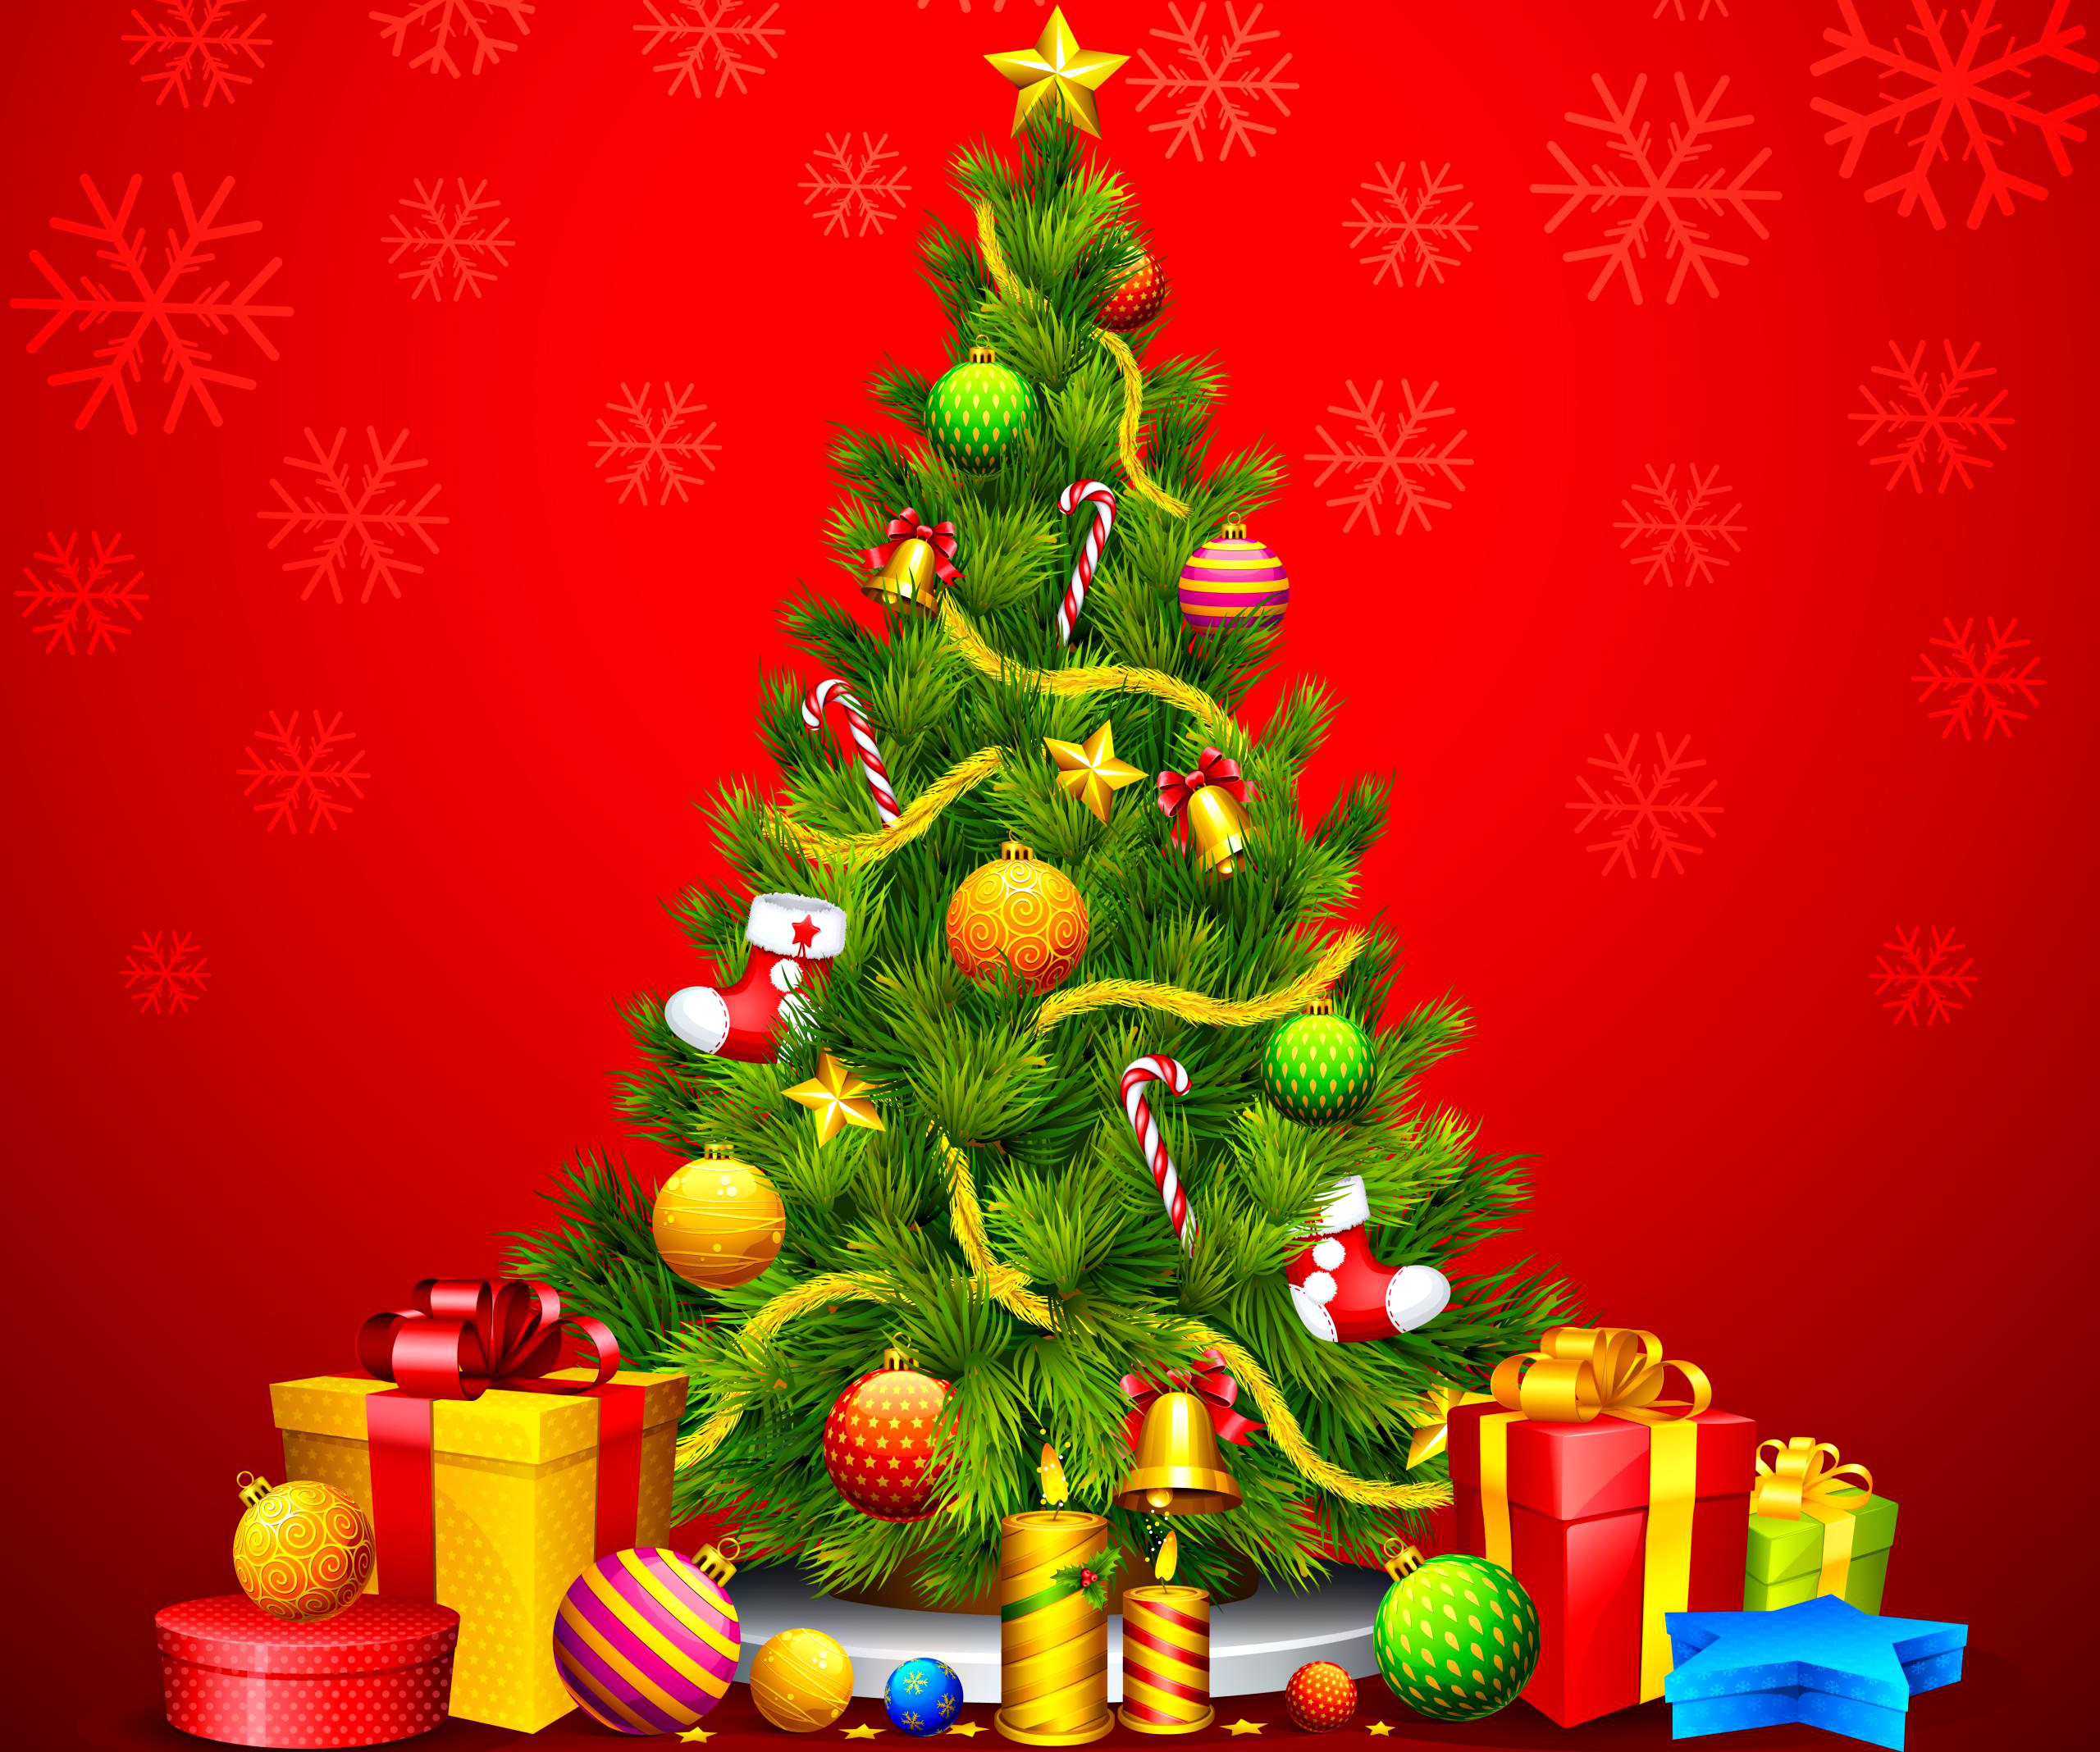 2560x2136 christmas tree animated hd wallpaper new christmas tree and fireplace #9755